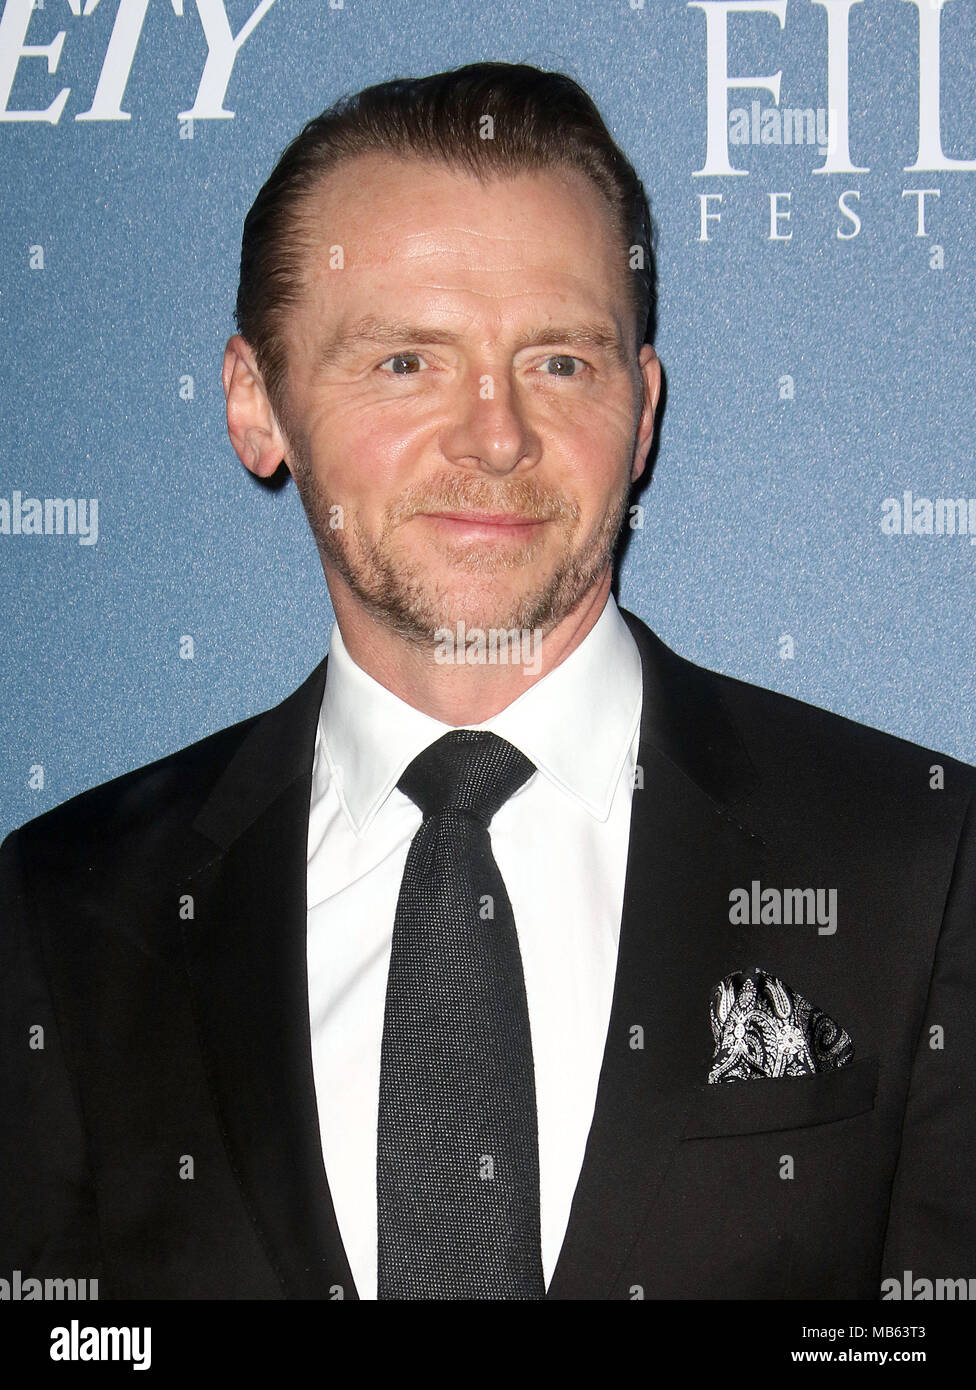 Feb 15, 2018  - Simon Pegg attending Newport Beach Film Festival UK Honours 2018, The Rosewood Hotel in London, England, UK Stock Photo